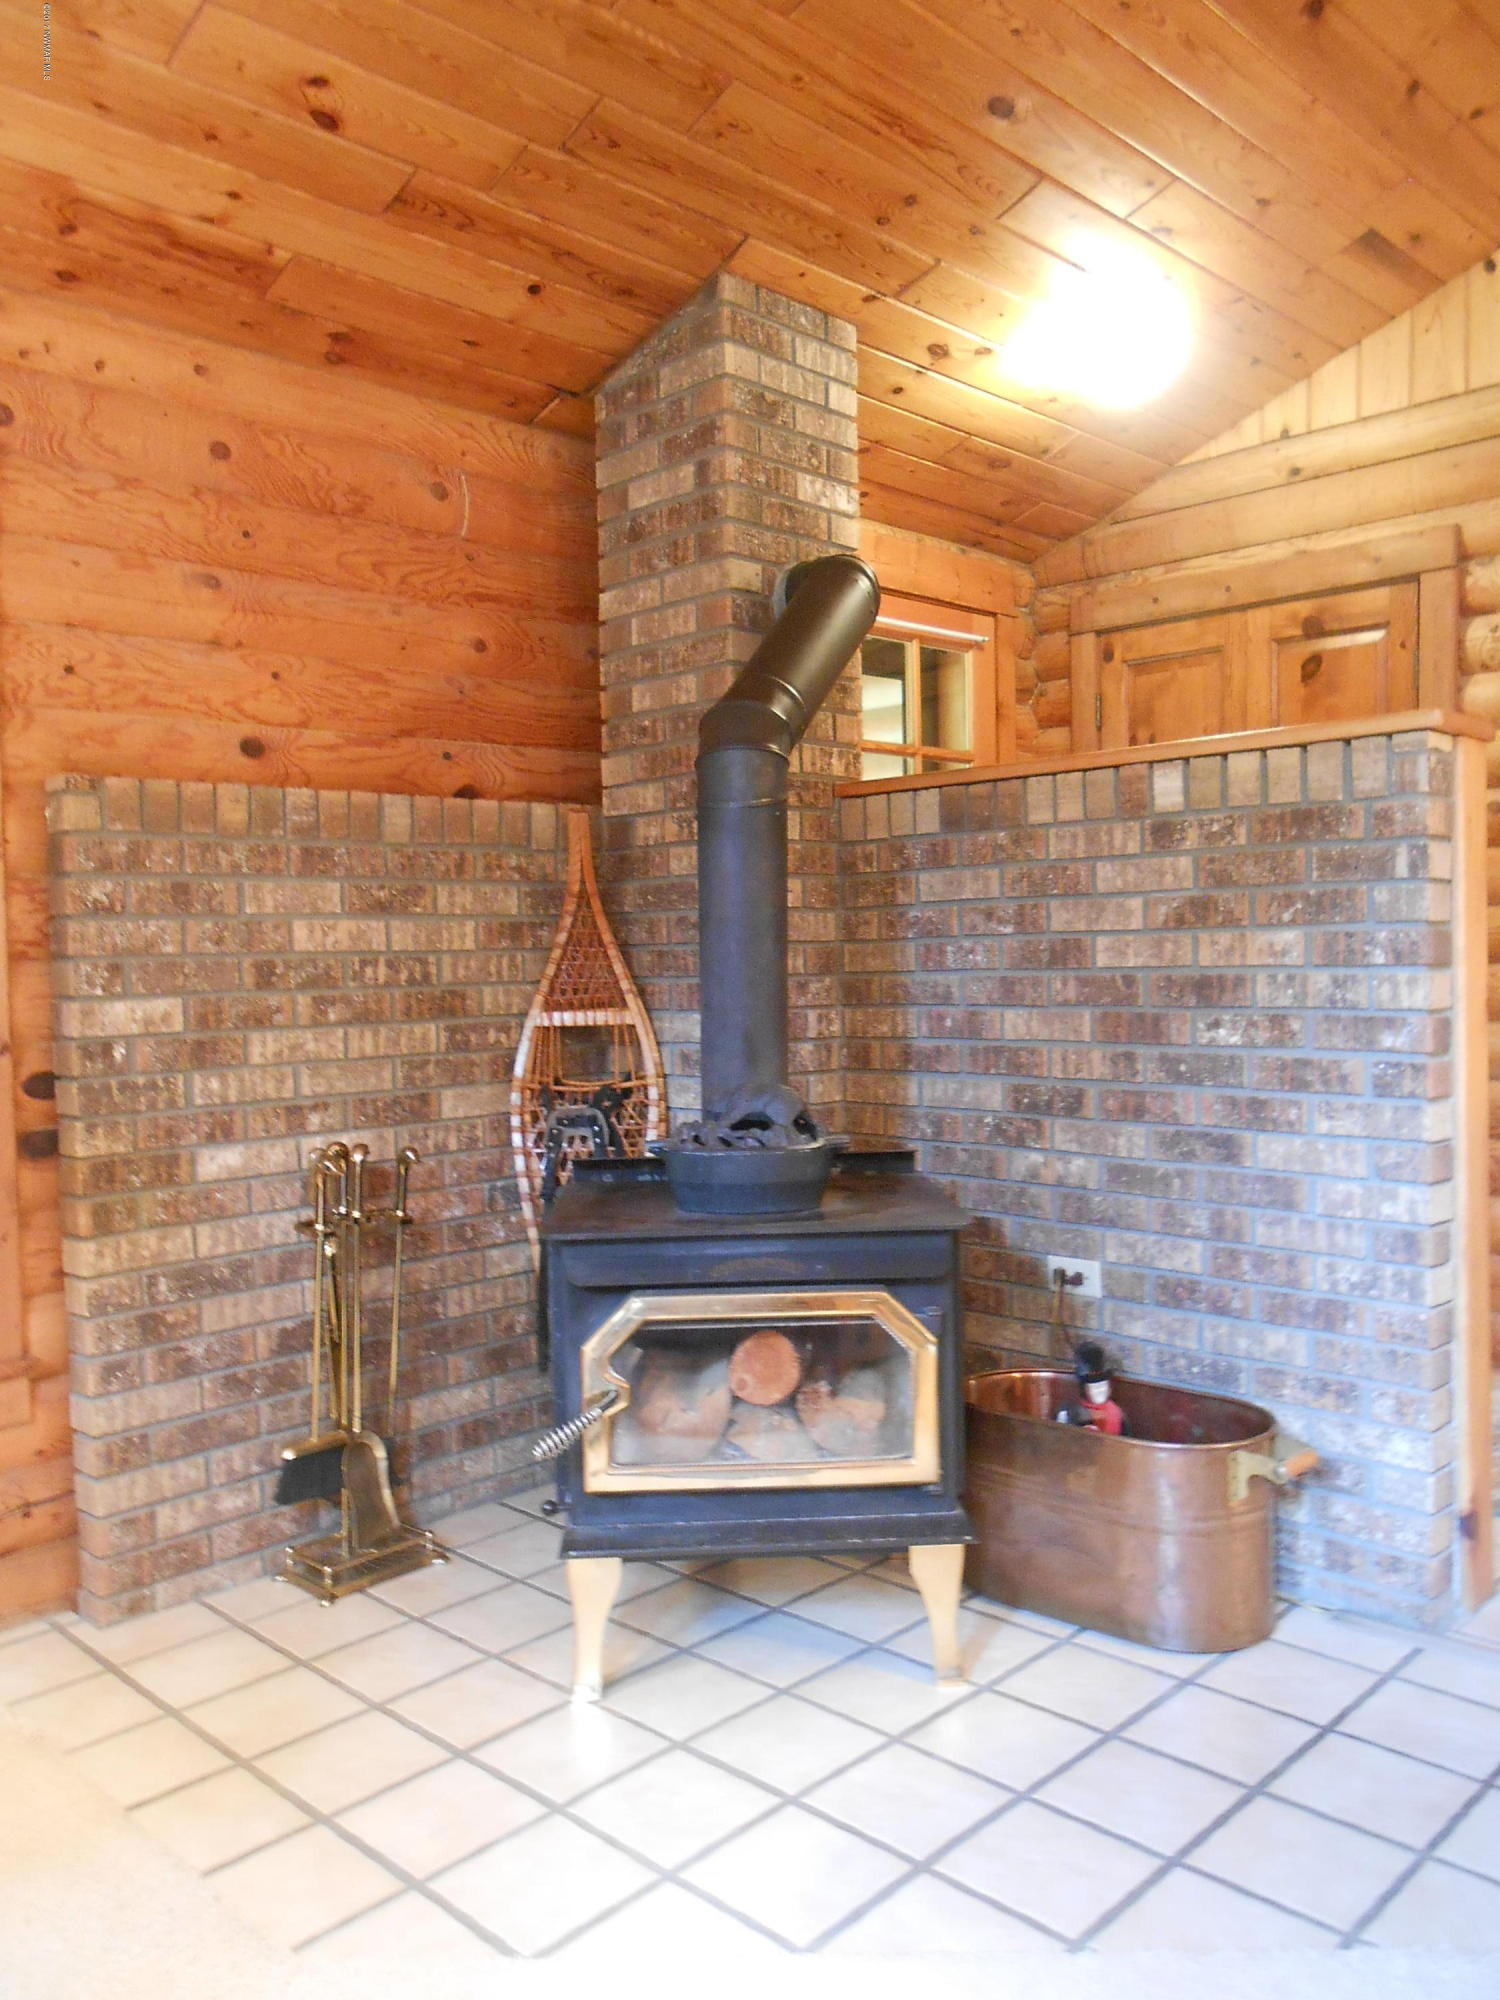 Newer wood stove to keep you warm during those chilly evenings